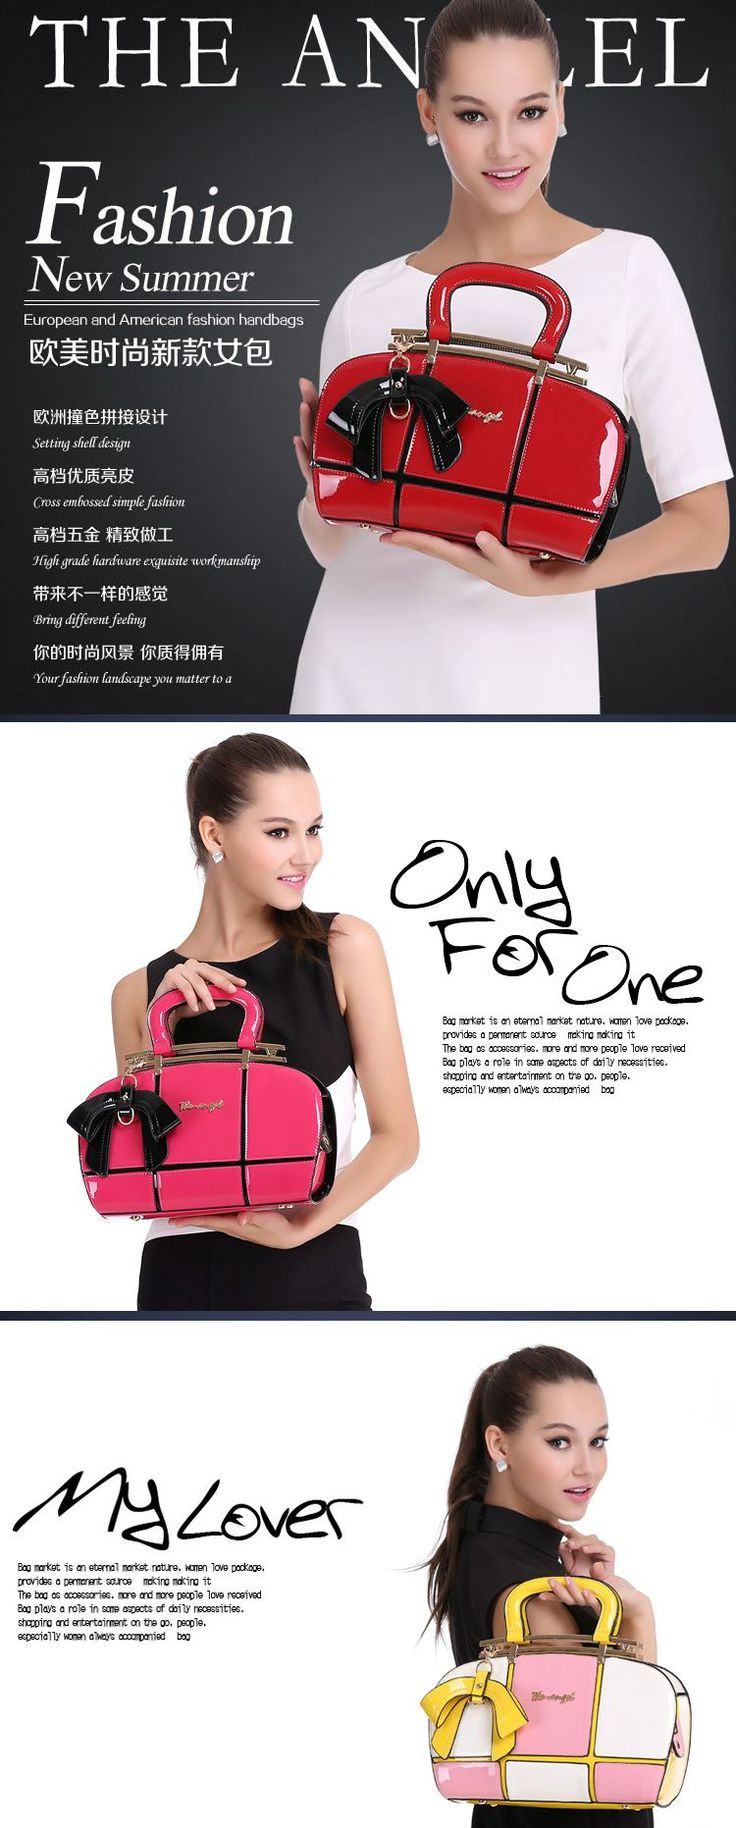 elegant sweet patent leather woman bag with bow  http://www.dhgate.com/product/linmeimode-high-quality-elegant-sweet-patent/234210786.html?recinfo=17,0,1#svh-1-5 null:0